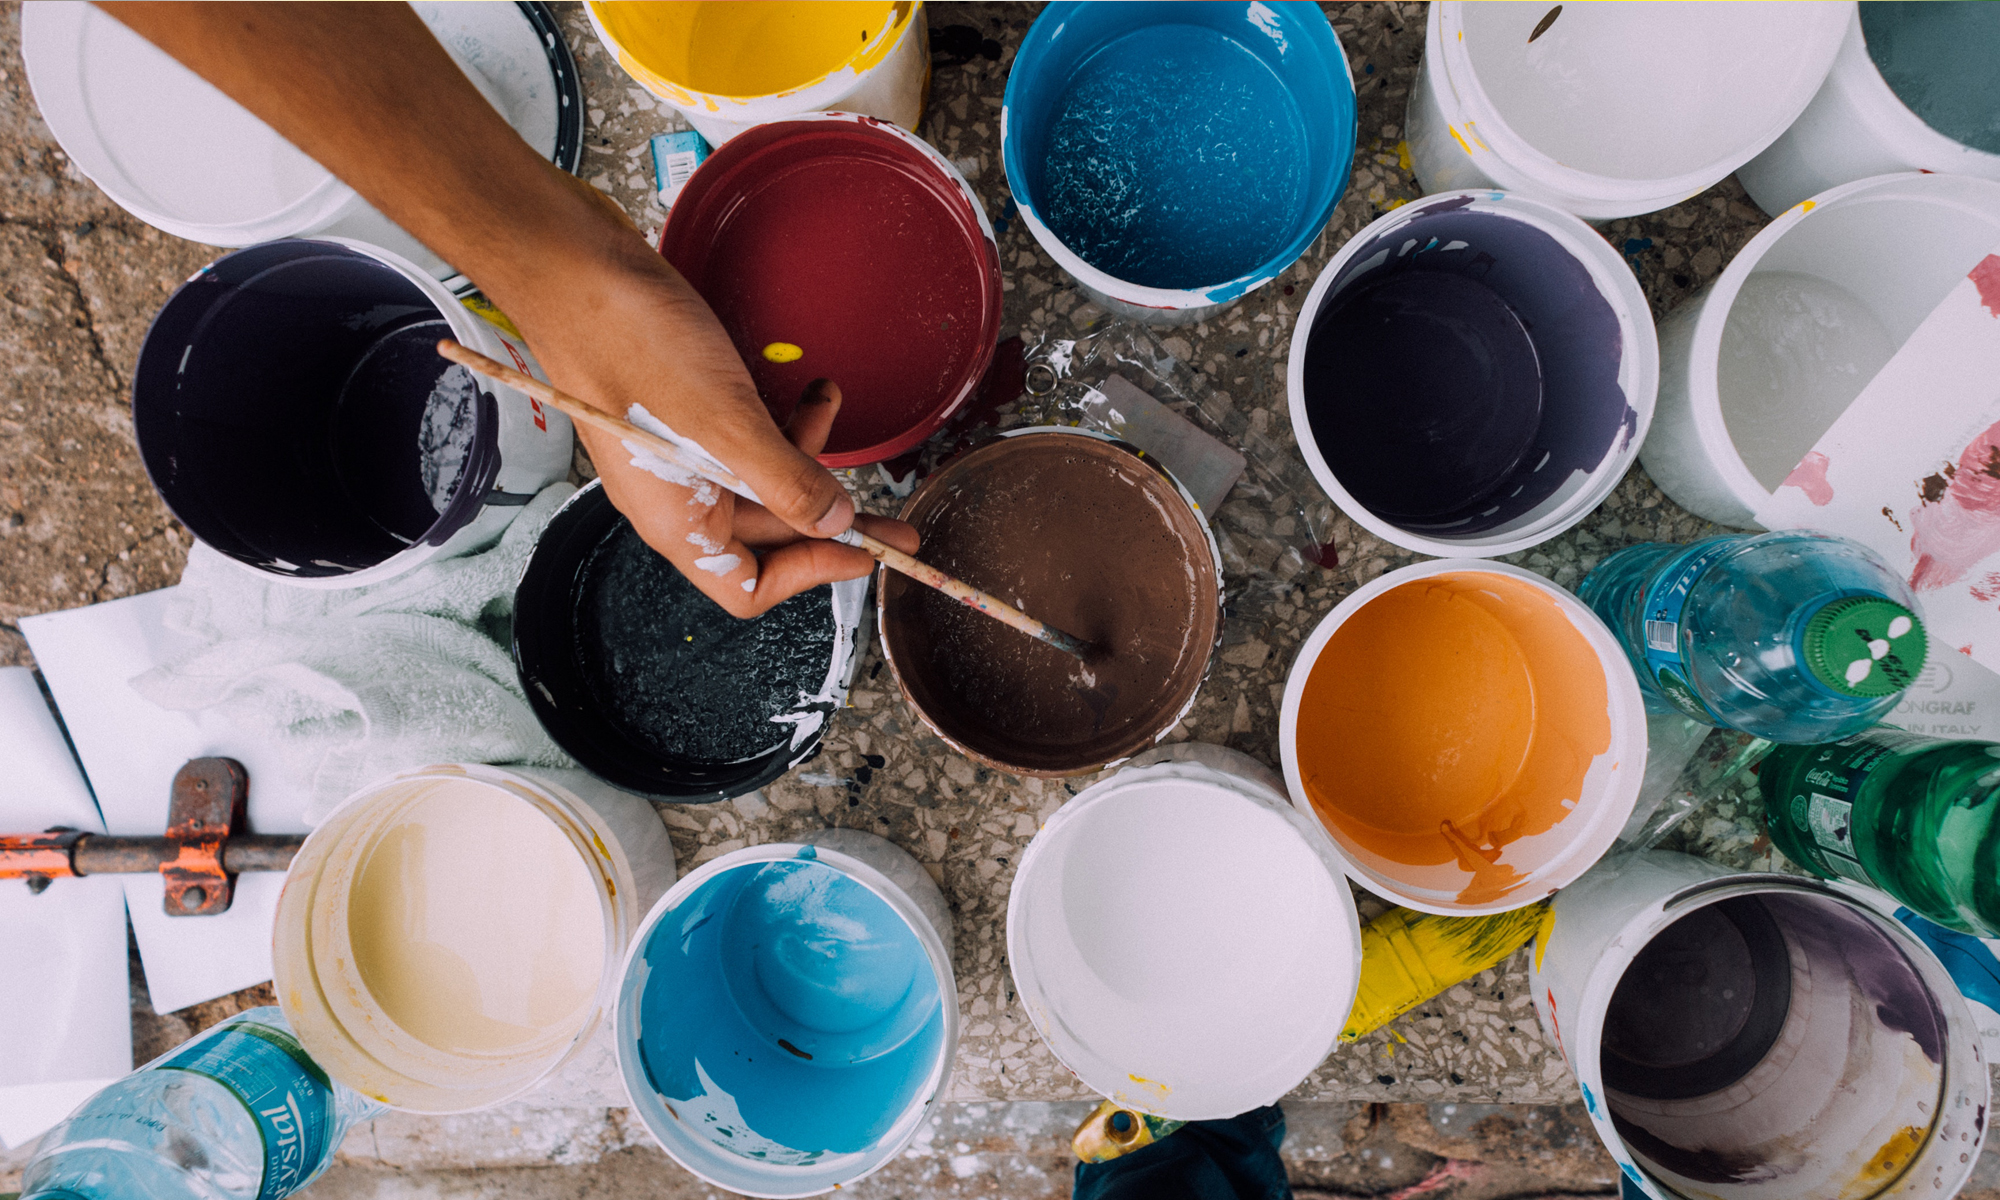 Talk to our team at Les Petits Painters and ask about our available art classes in the neighbourhood of Chatswood for your little ones.